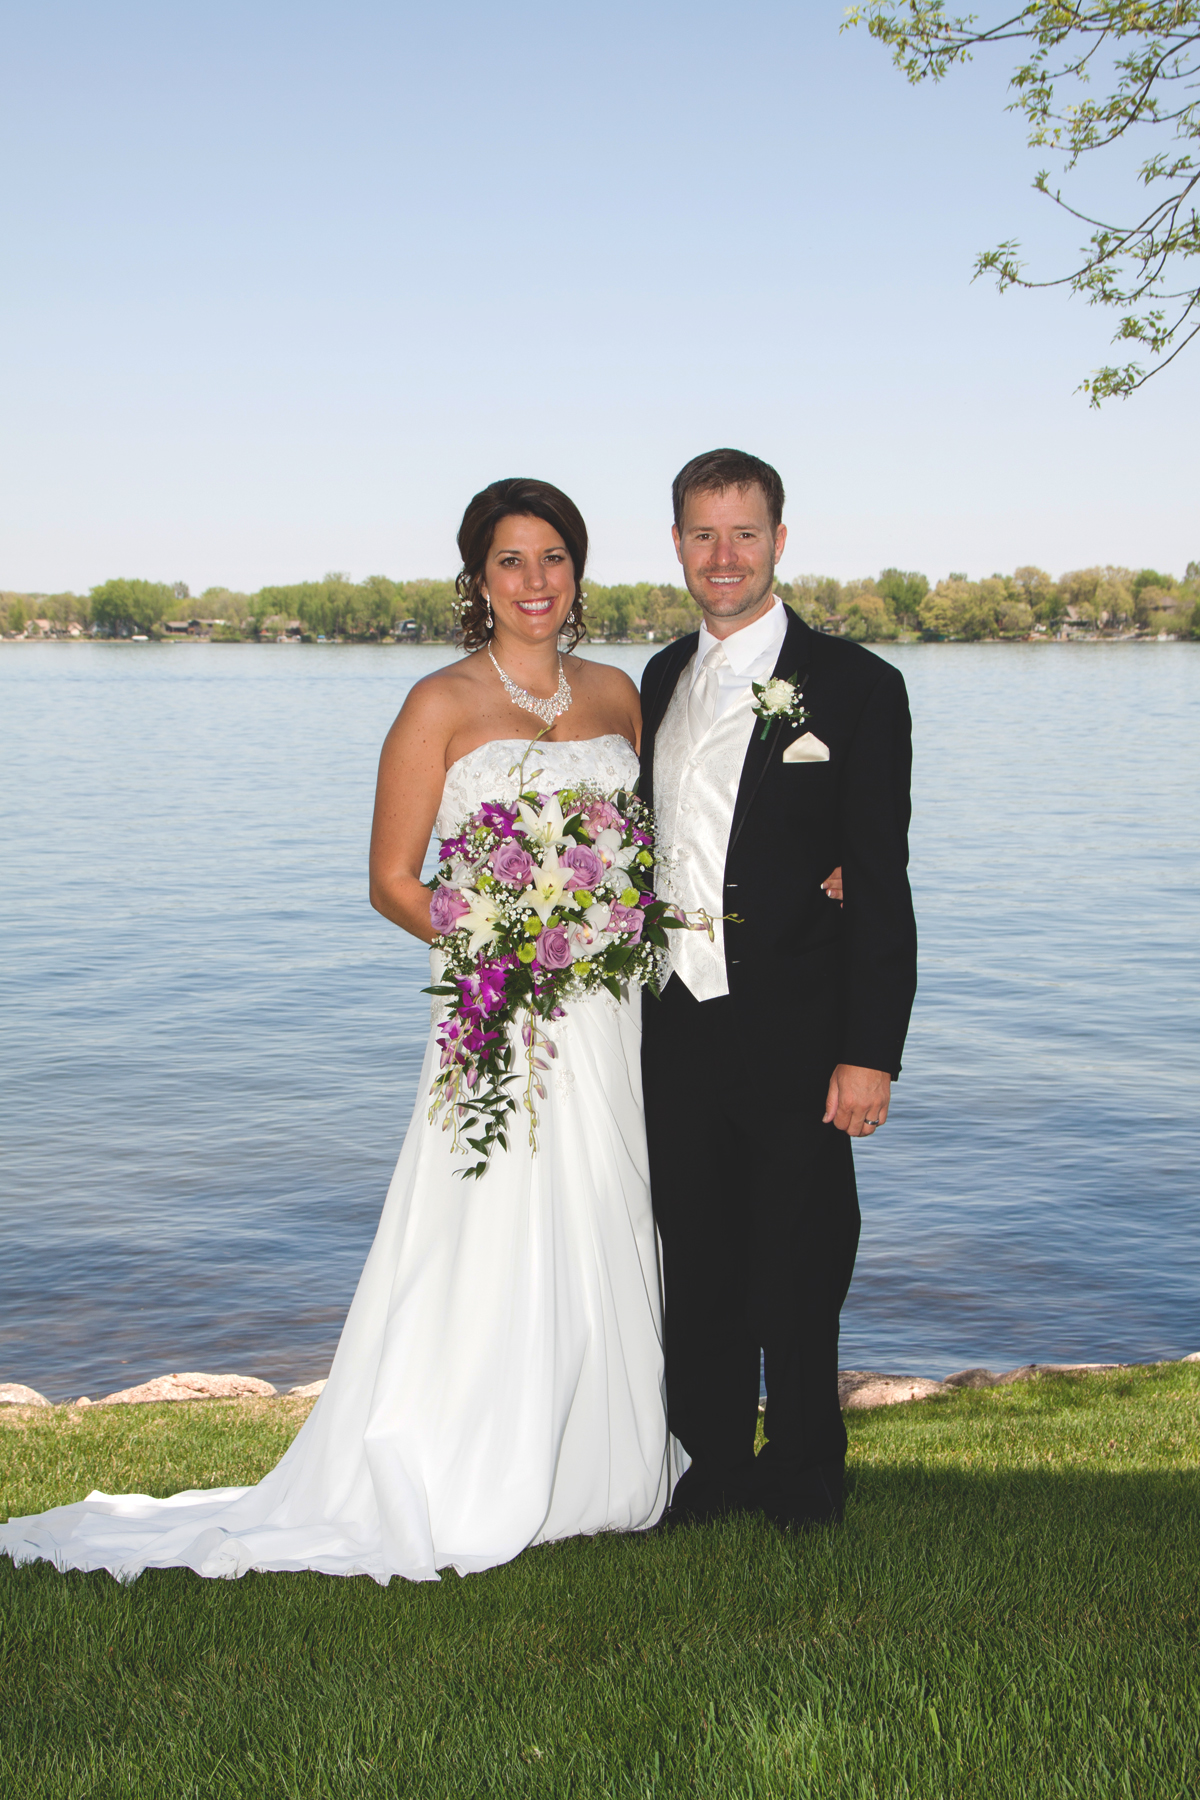 Nothing compares to the Land of 10,000 lakes! Brenda and Jeremy, who reside in Arizona, couldn't resist coming back home for their wedding back in May